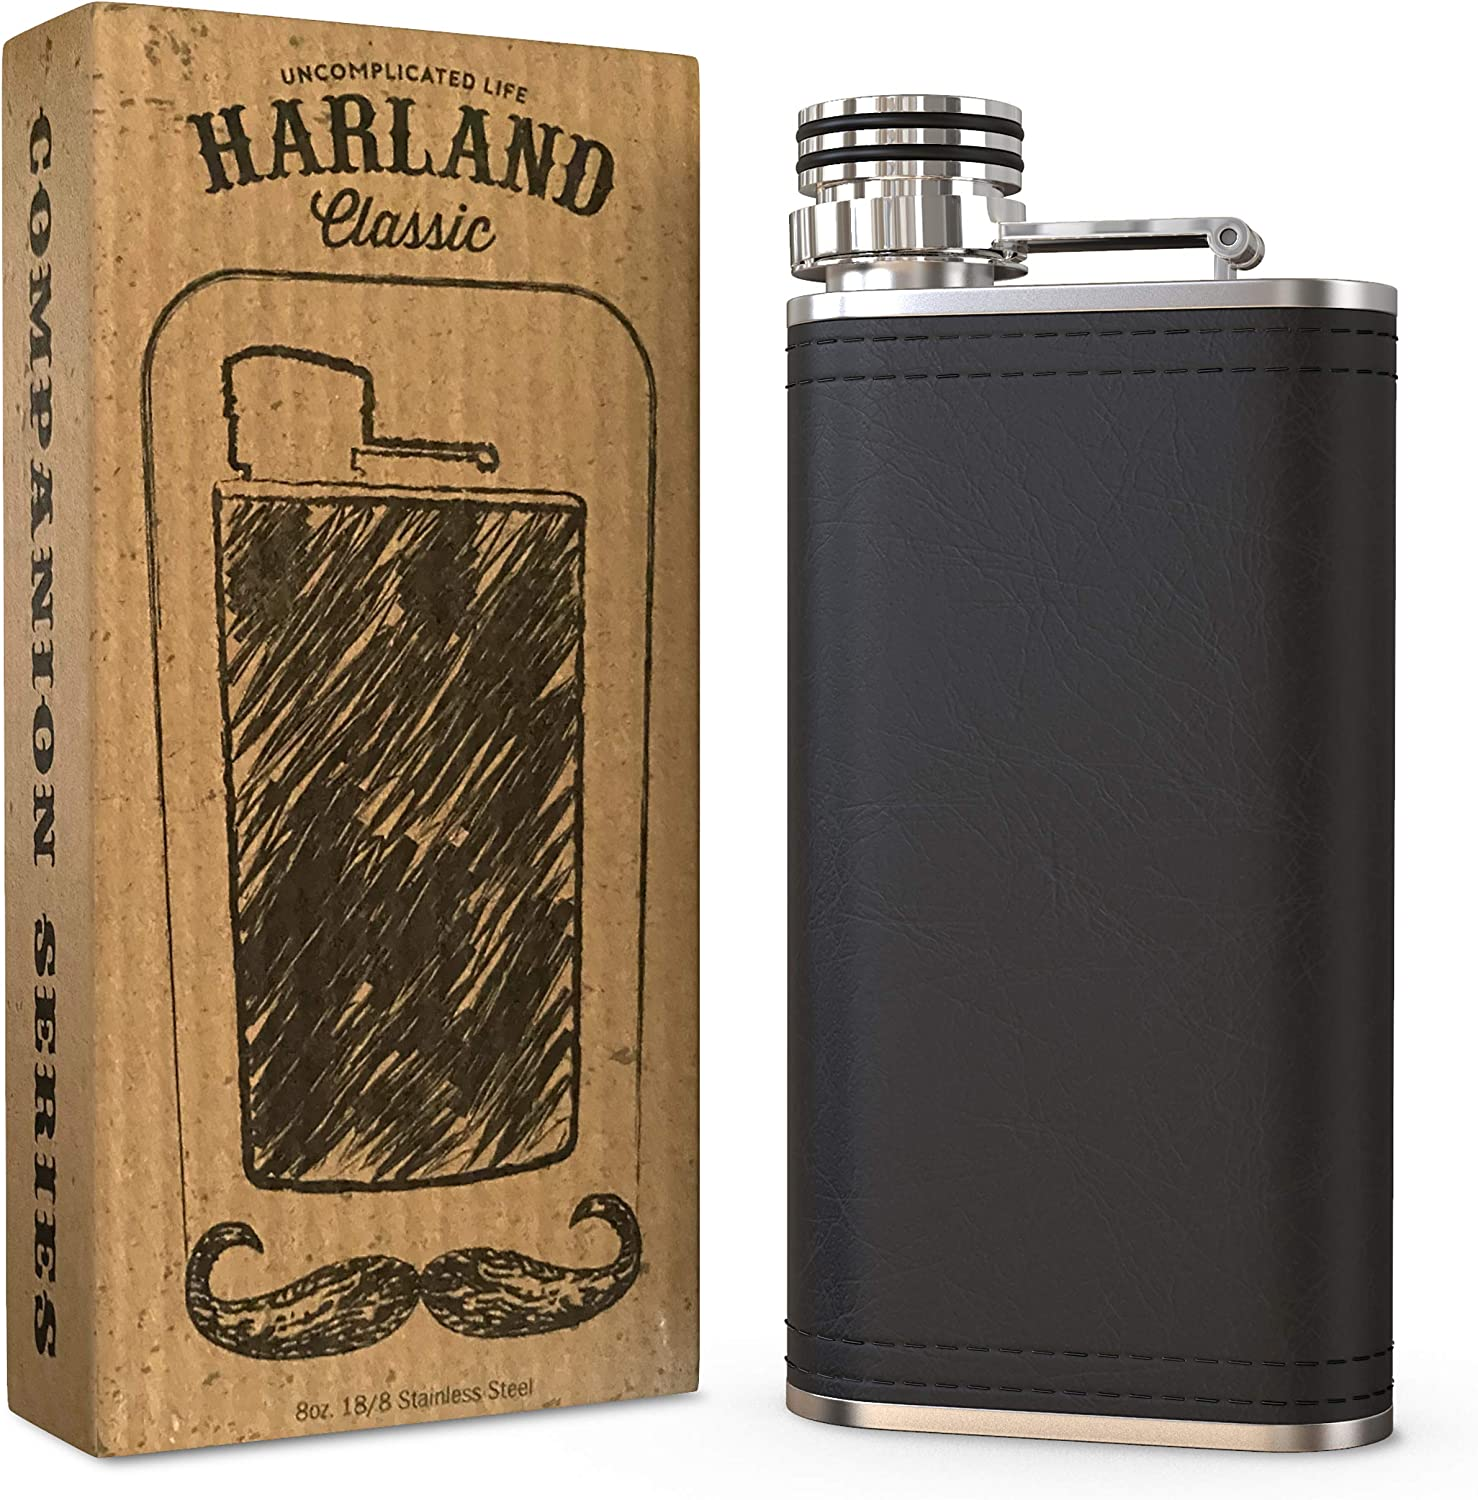 Harland 8 oz Wide Mouth Hip Alcohol Flask | Soft Touch PU Leather wrap 18/8 304 Stainless Steel Metal Highest Food Grade | Best Groomsmen Drinking Gift | Classic Vintage Retro Style